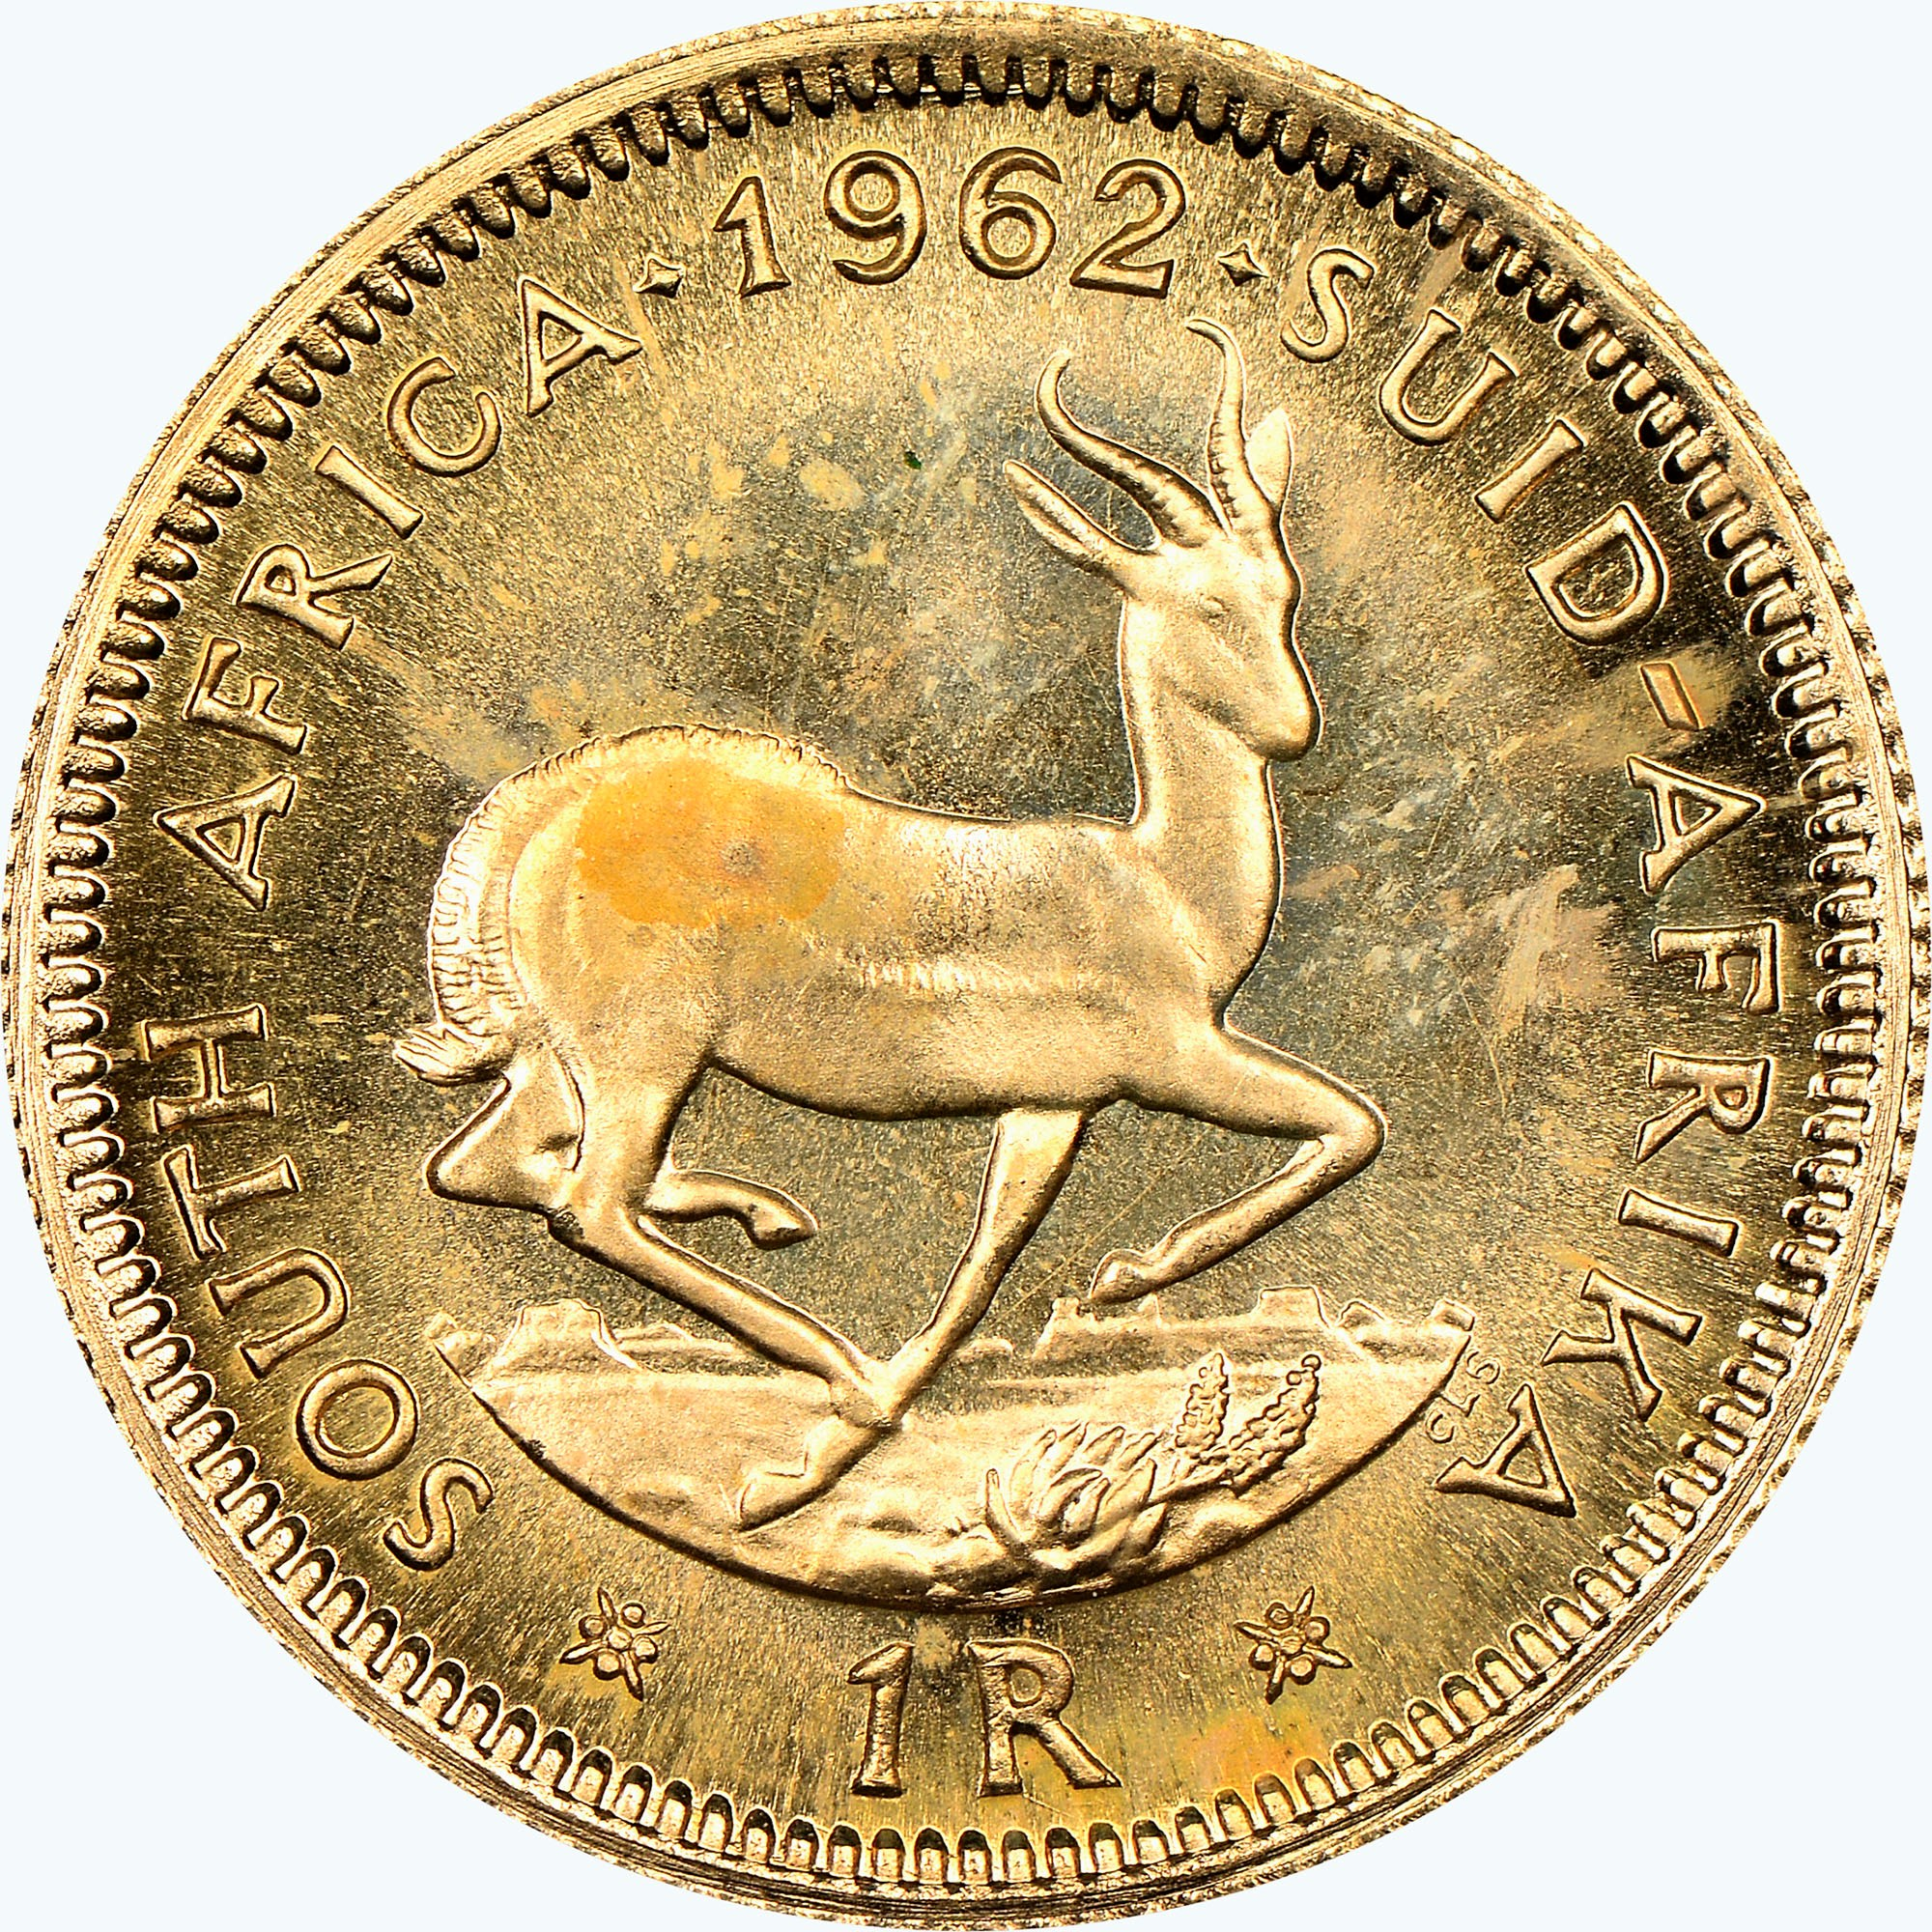 South Africa Rand obverse